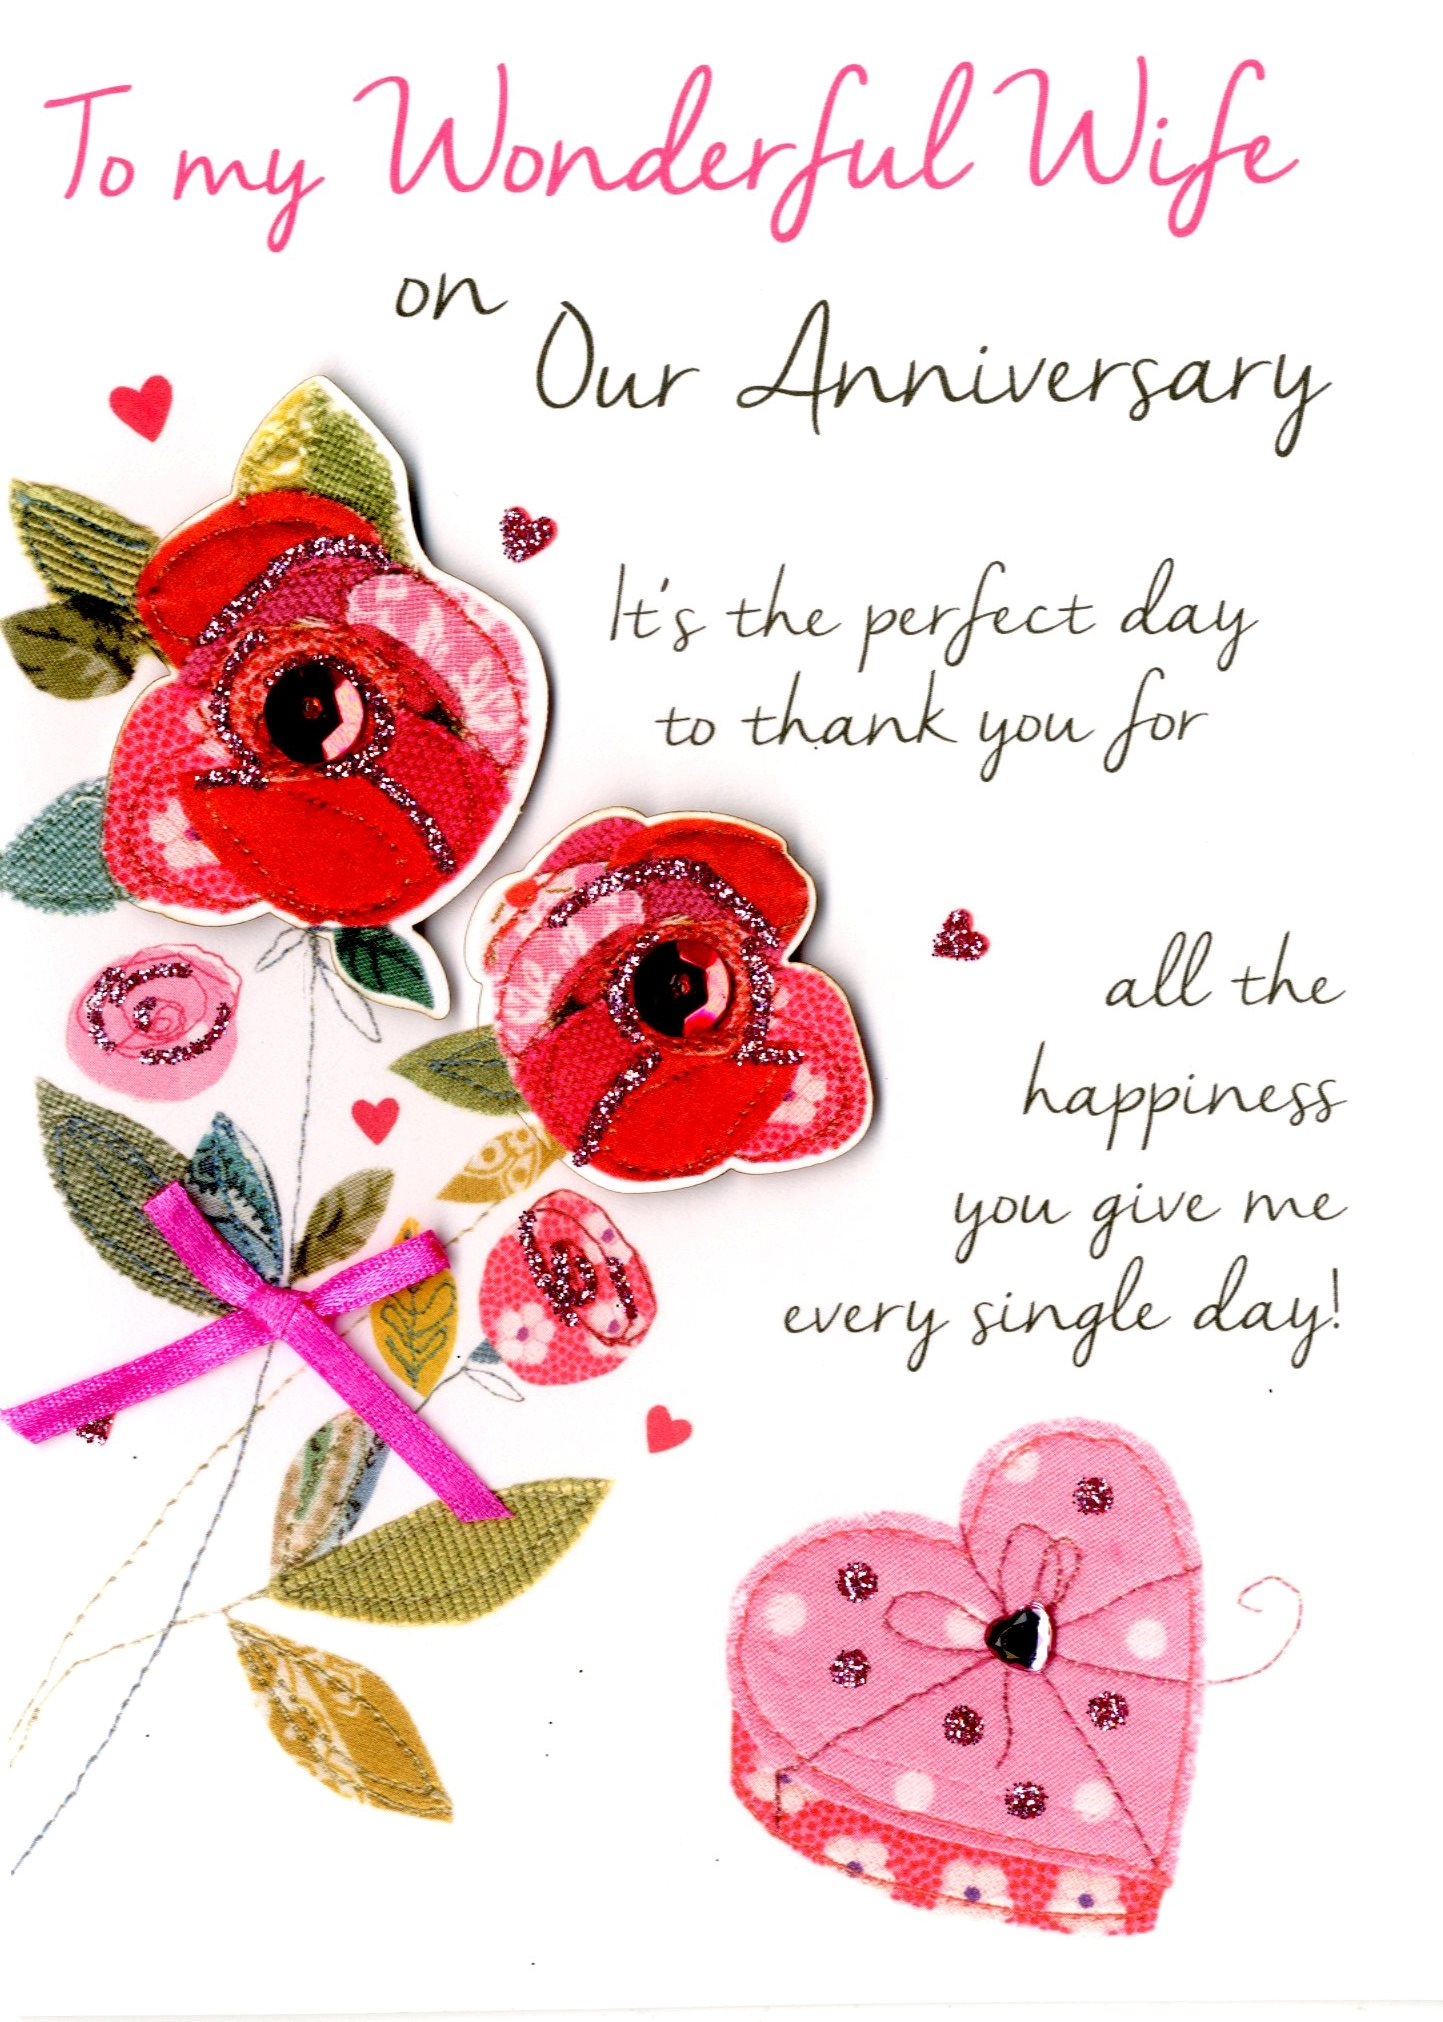 Wife on our anniversary greeting card cards love kates wife on our anniversary greeting card m4hsunfo